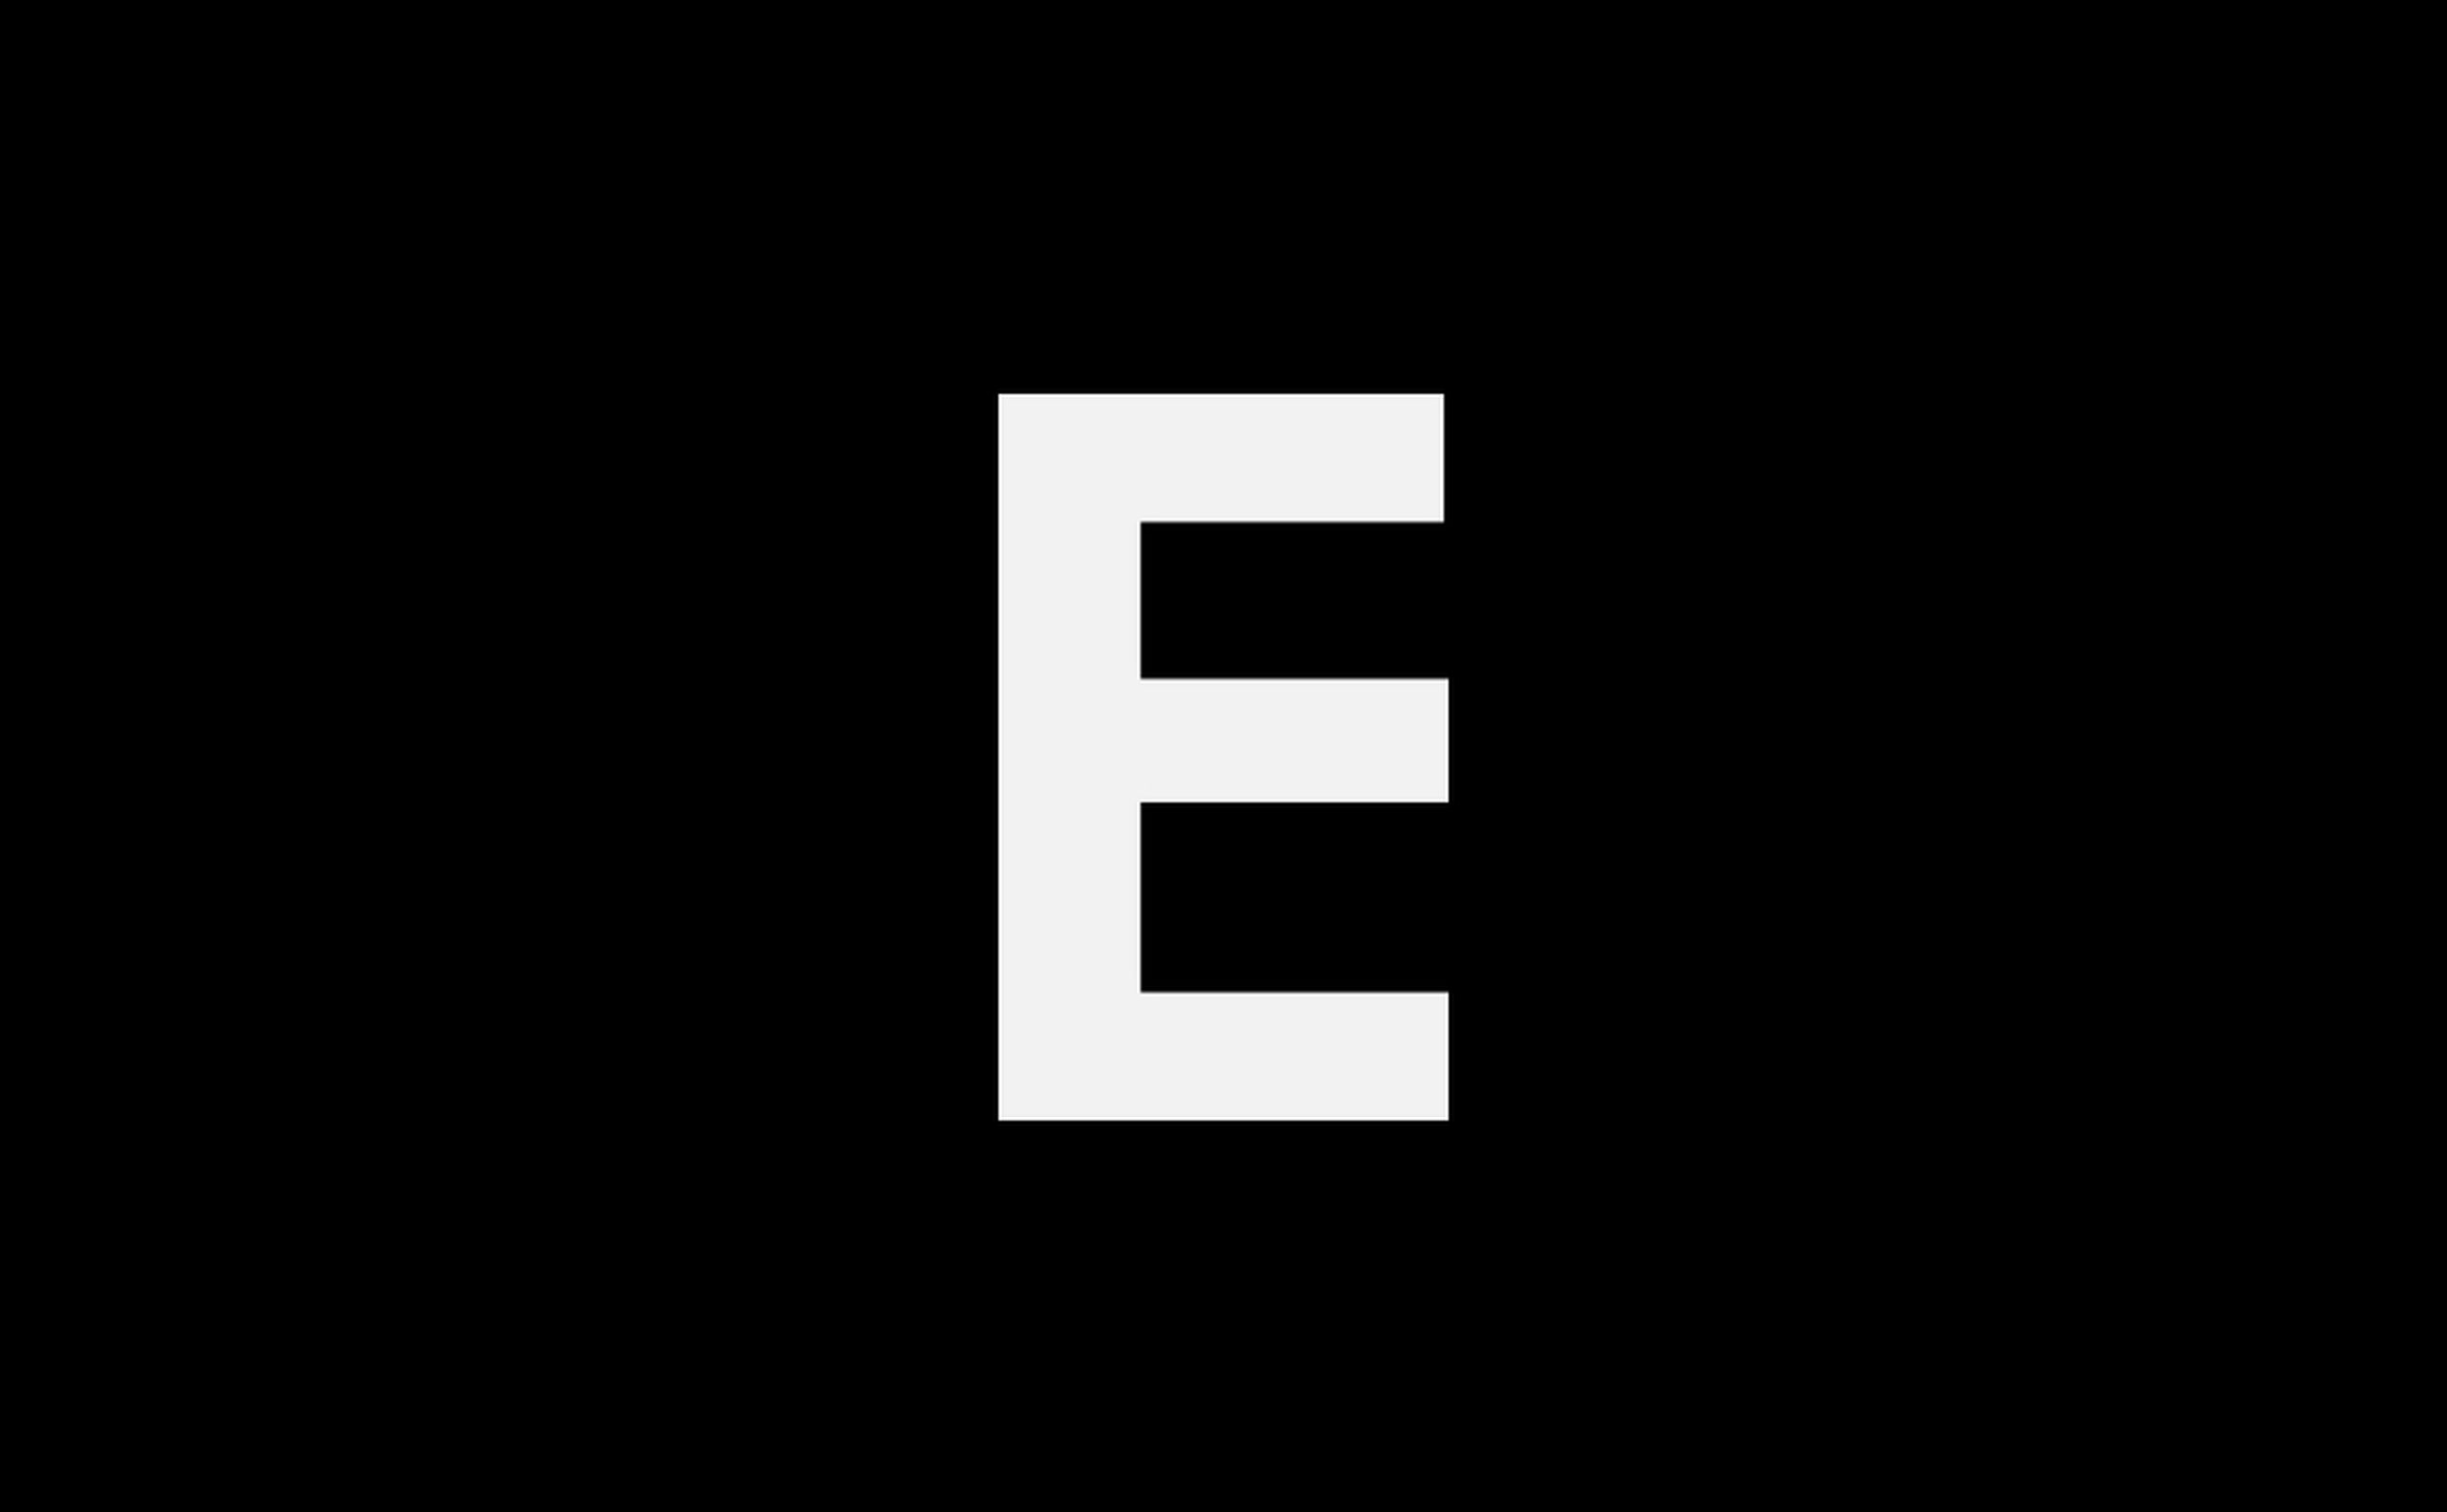 mountain, silhouette, tranquility, nature, sunset, beauty in nature, scenics, tranquil scene, sky, no people, outdoors, mountain range, landscape, water, night